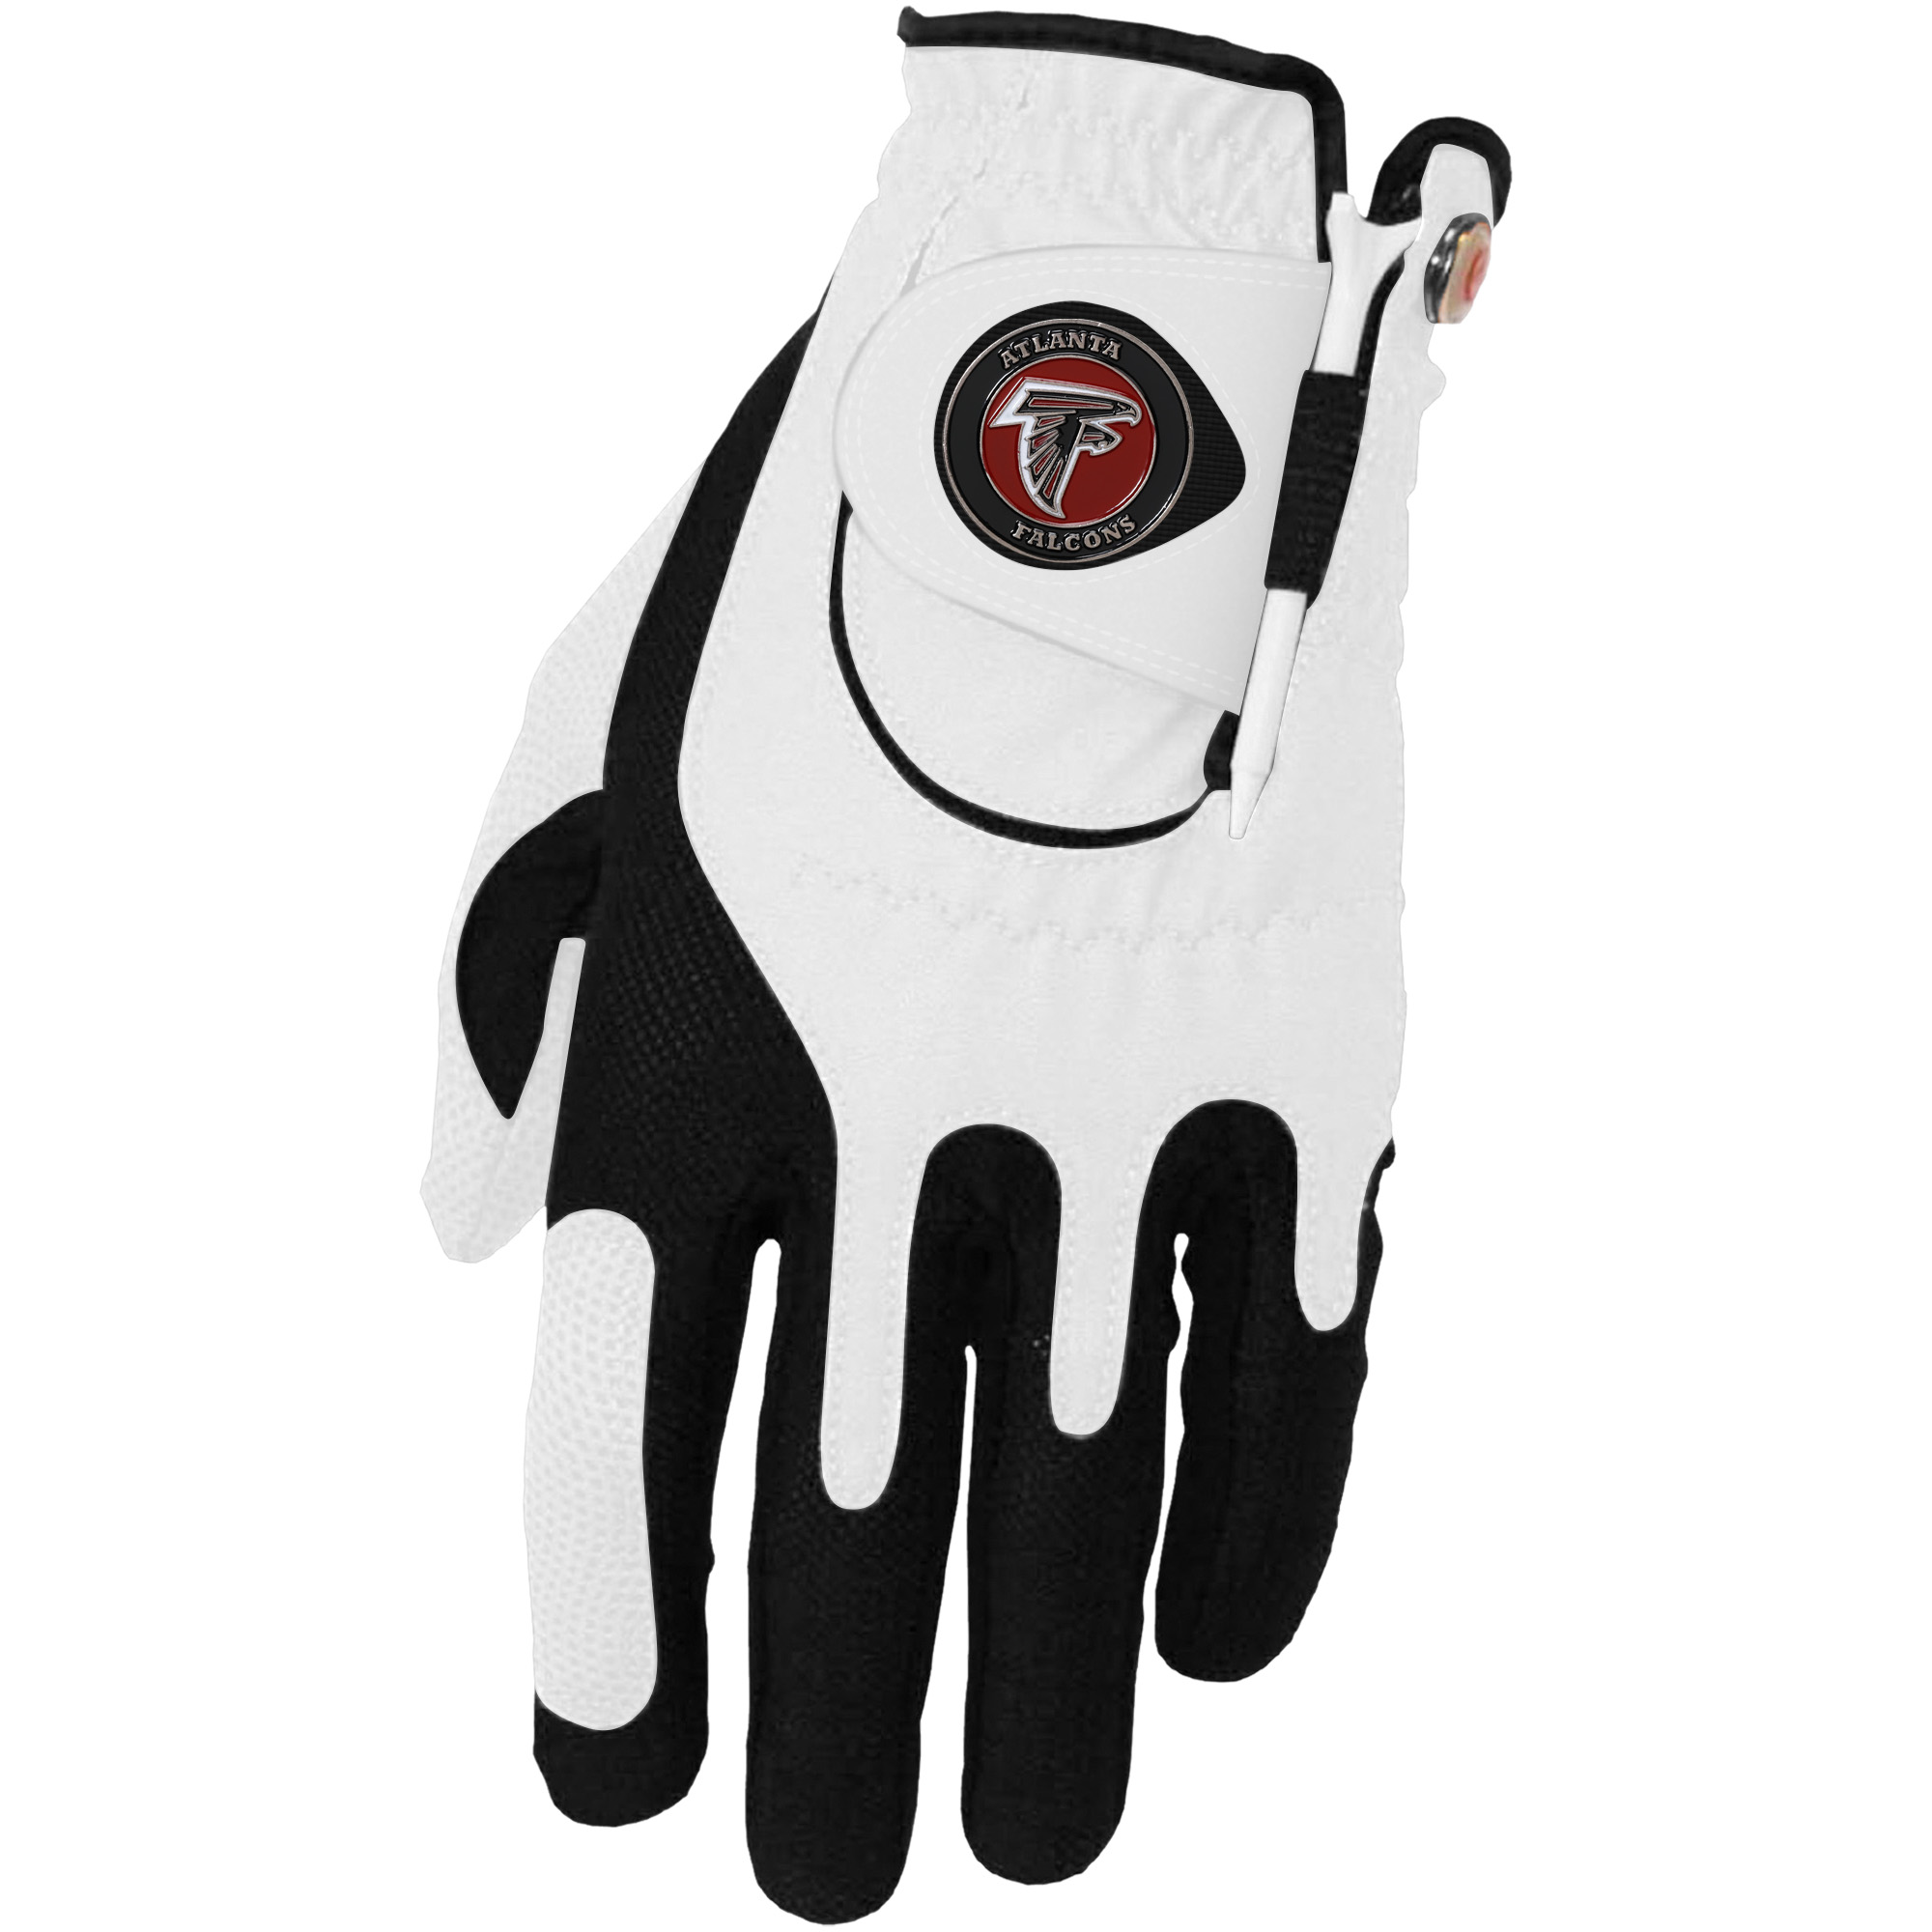 Atlanta Falcons Left Hand Golf Glove & Ball Marker Set - White - OSFM